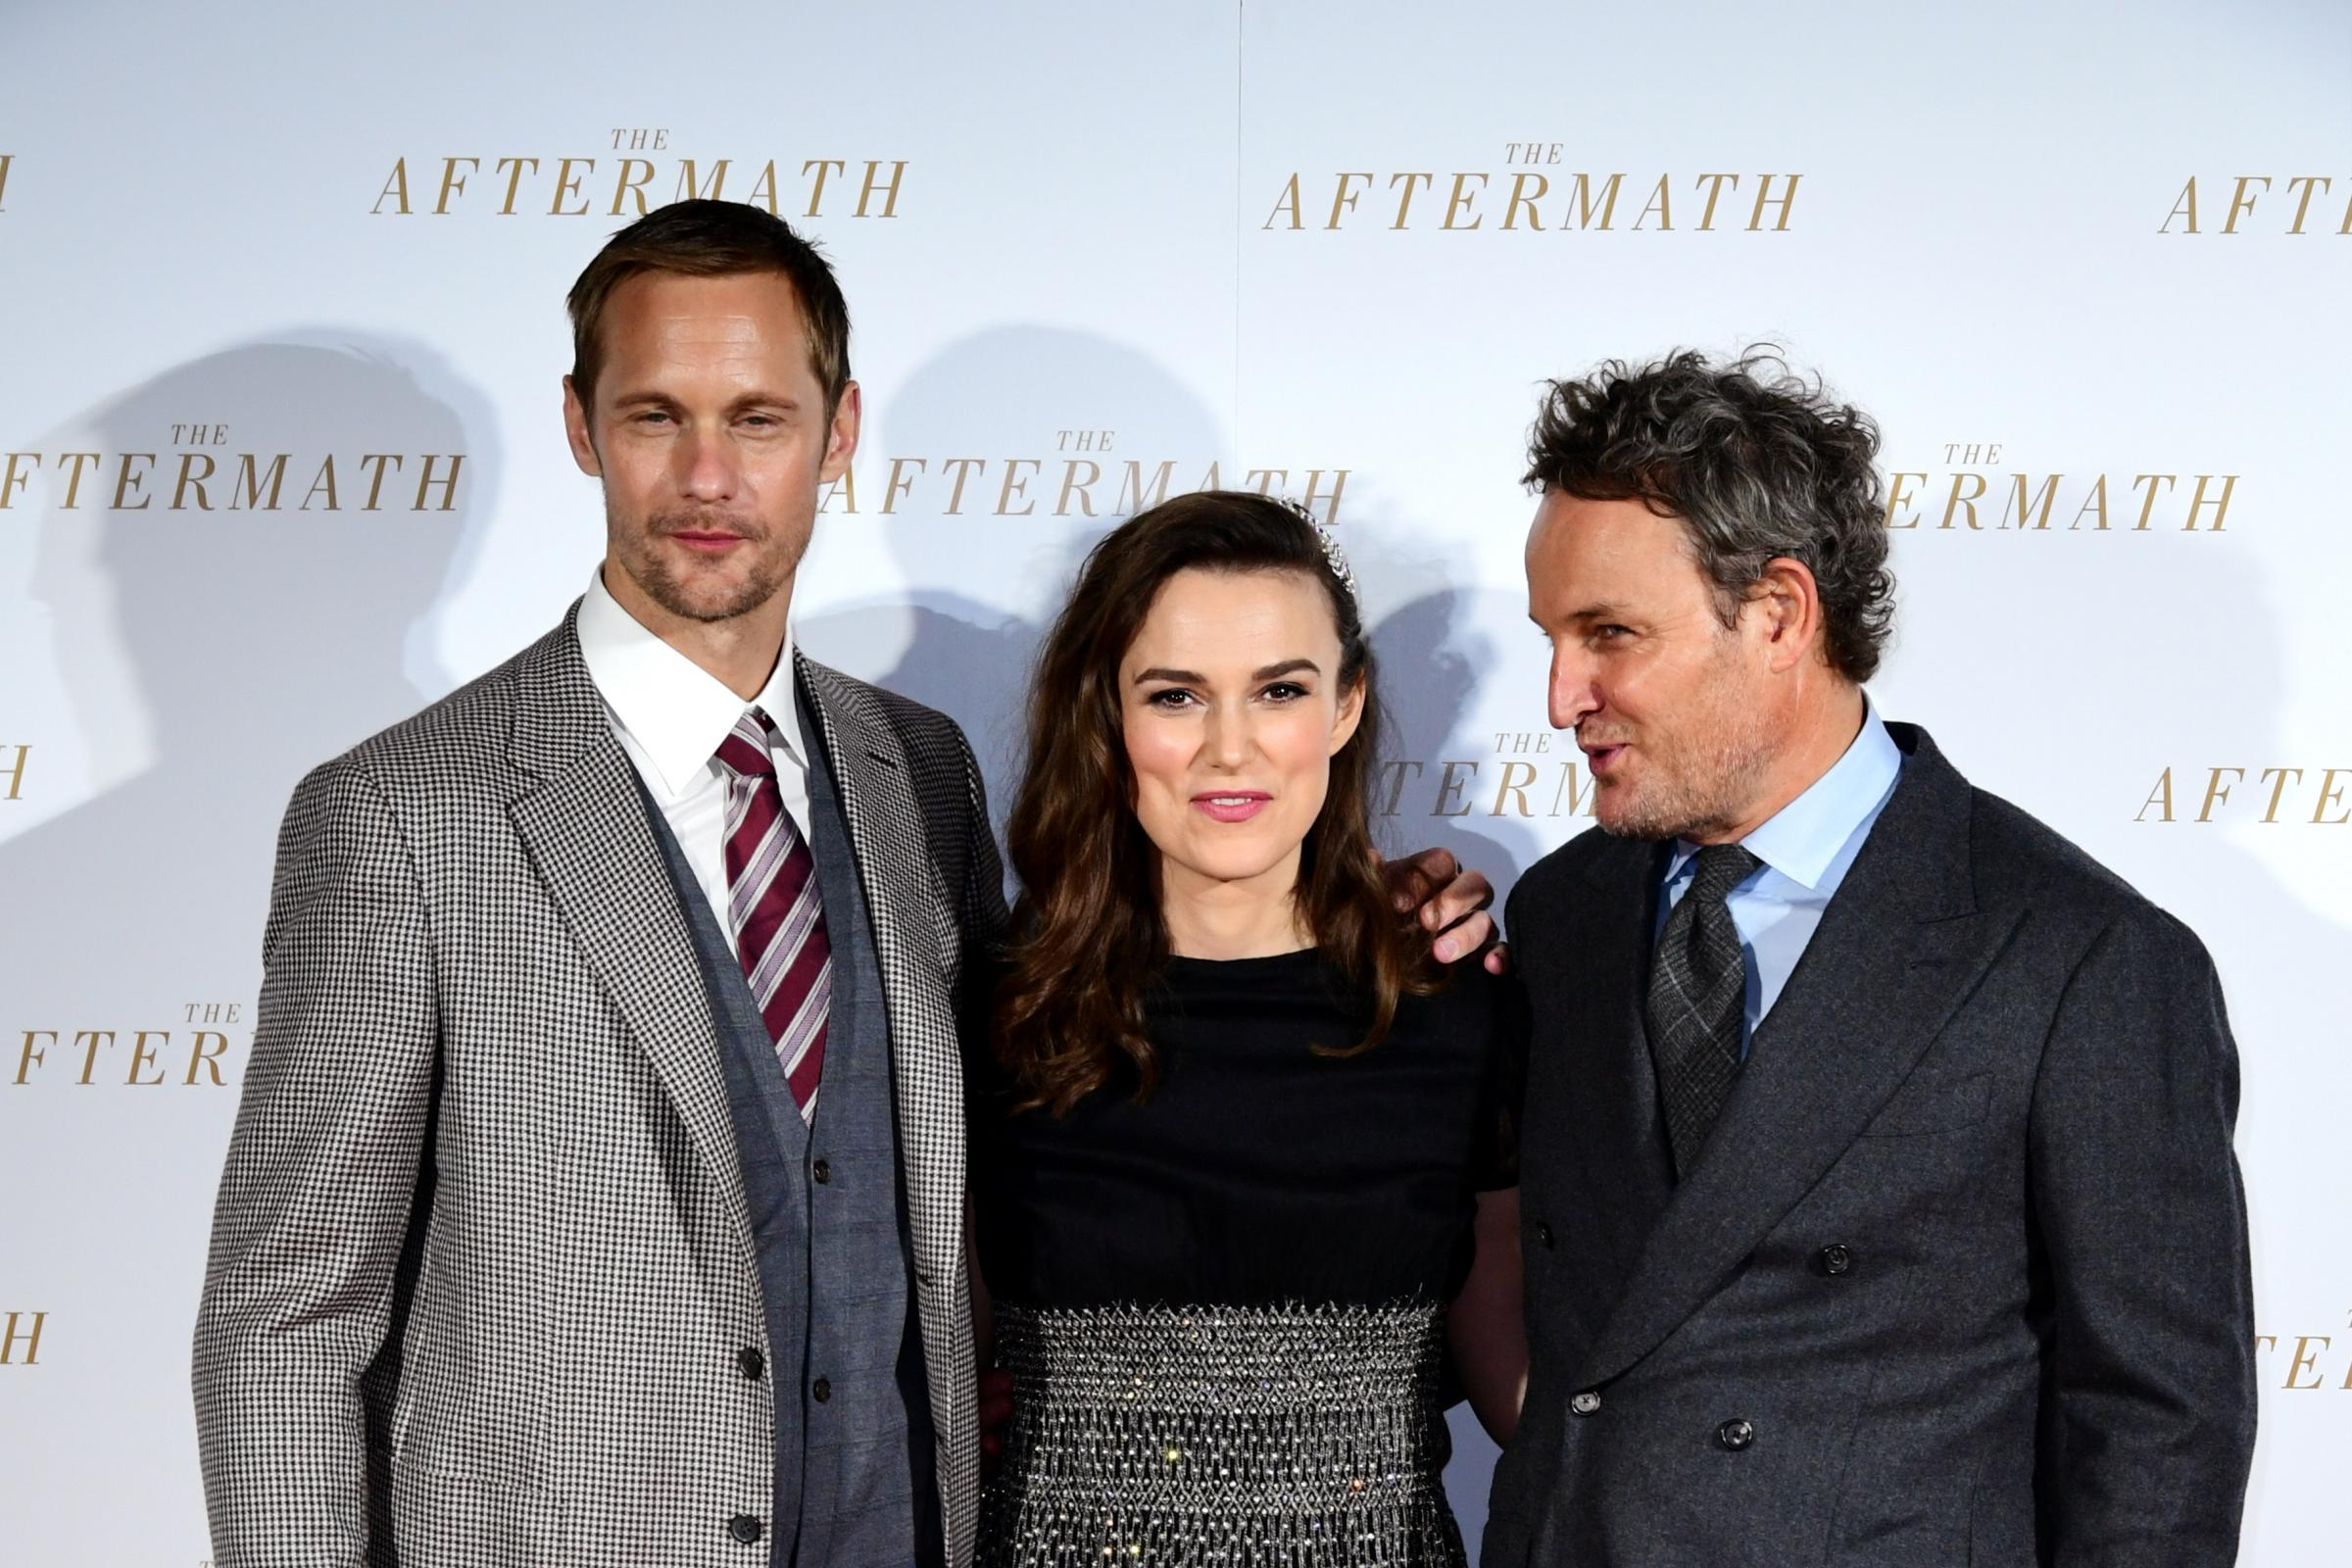 Alexander Skarsgard, Keira Knightley, and Jason Clarke attending the world premiere of The Aftermath